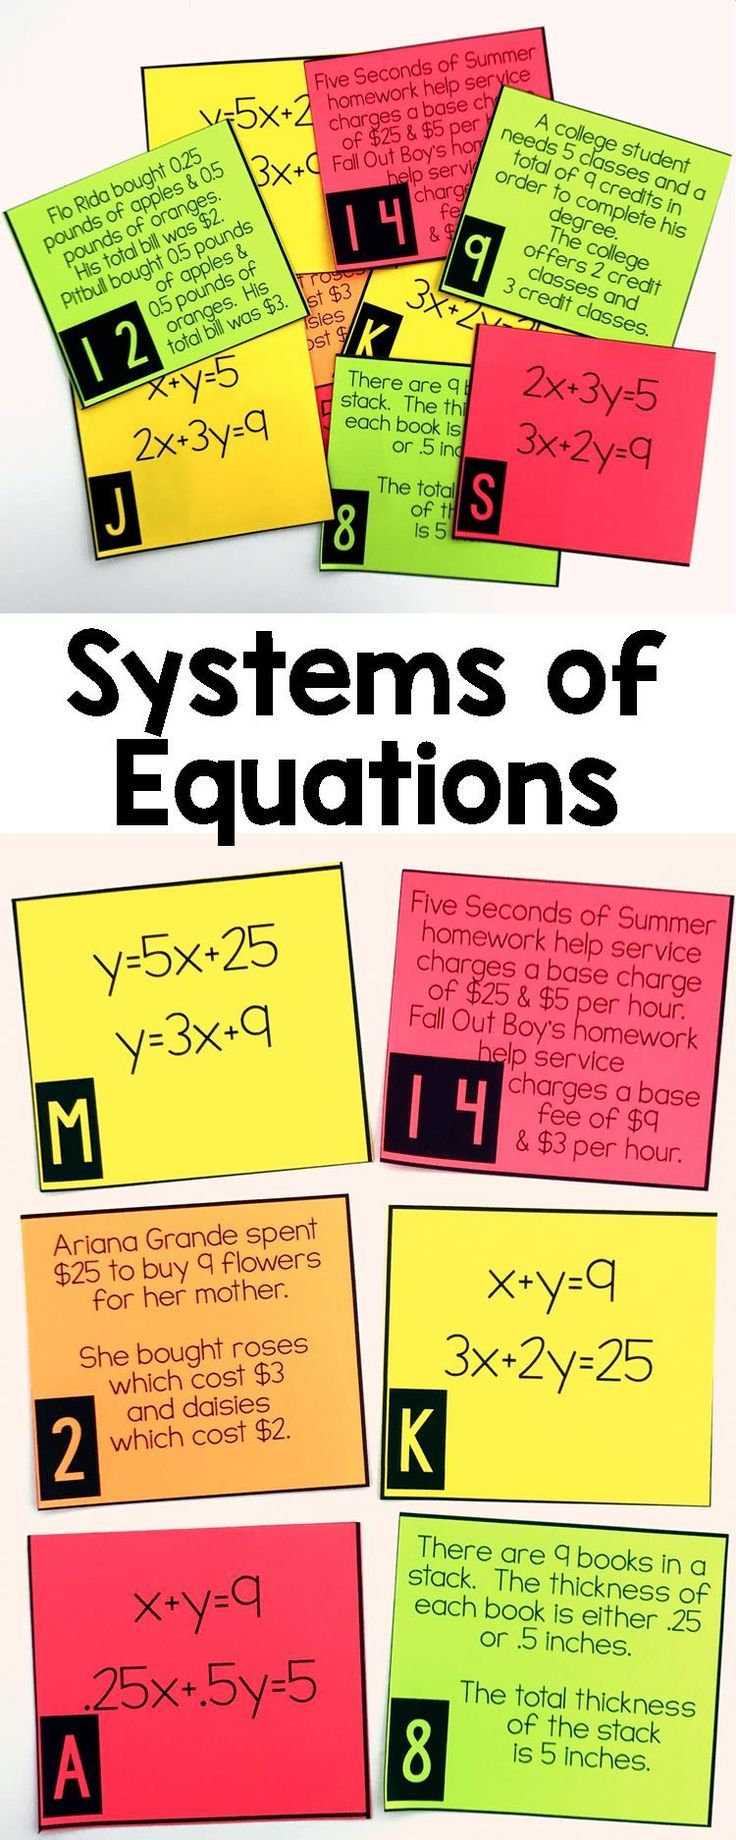 worksheet Systems Of Equations And Inequalities 17 best images about systems of equations inequalities on word problem matching cards